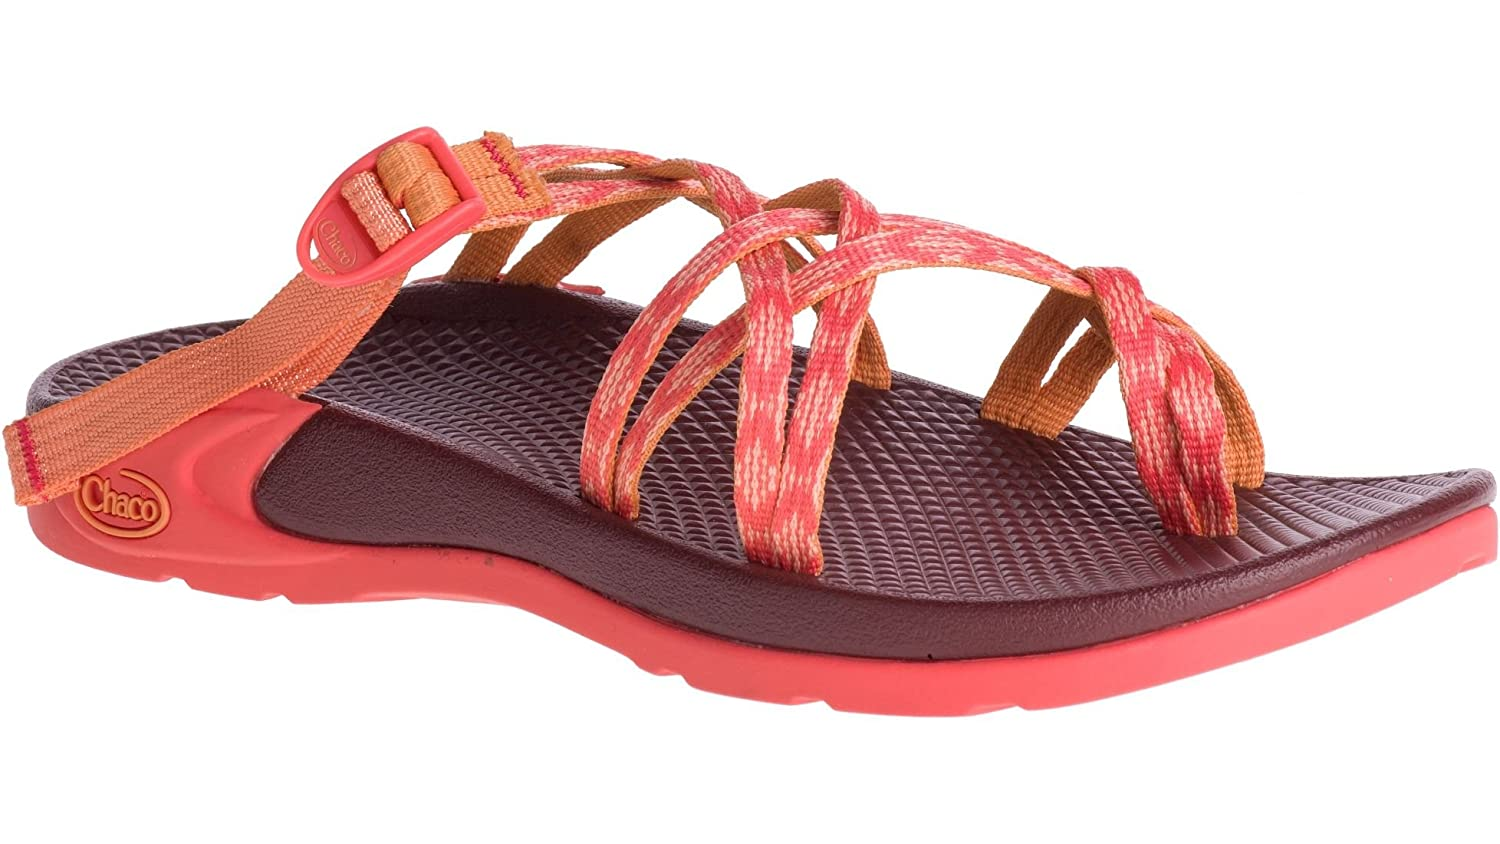 Chaco Women's Zong X Ecotread Athletic Sandal B072KGBJ84 10 B(M) US|Tacit Peach